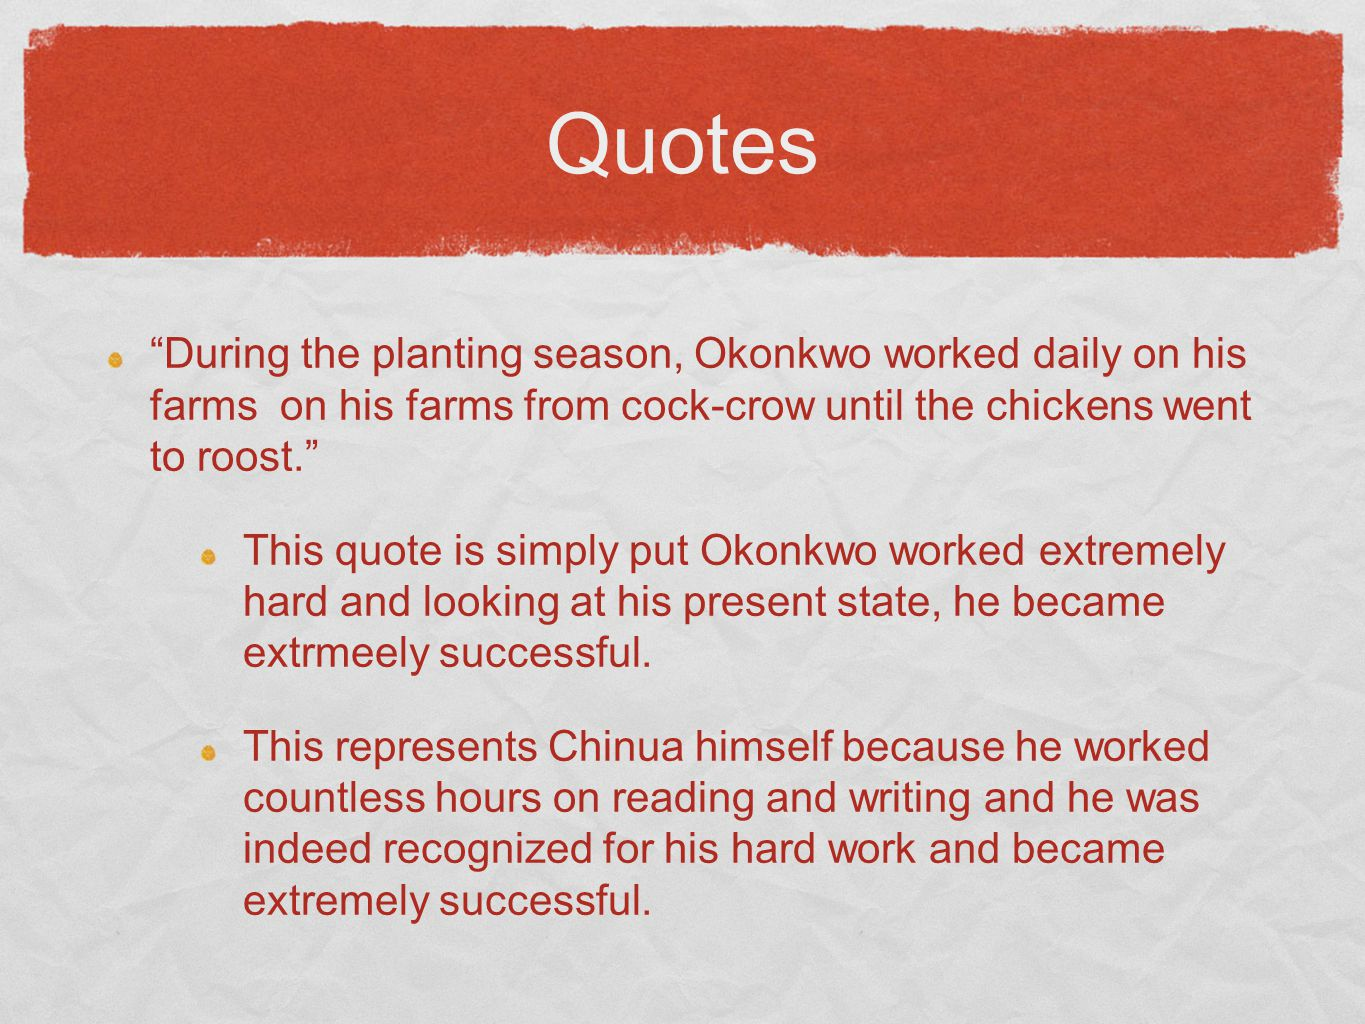 Quotes During the planting season, Okonkwo worked daily on his farms on his farms from cock-crow until the chickens went to roost. This quote is simply put Okonkwo worked extremely hard and looking at his present state, he became extrmeely successful.